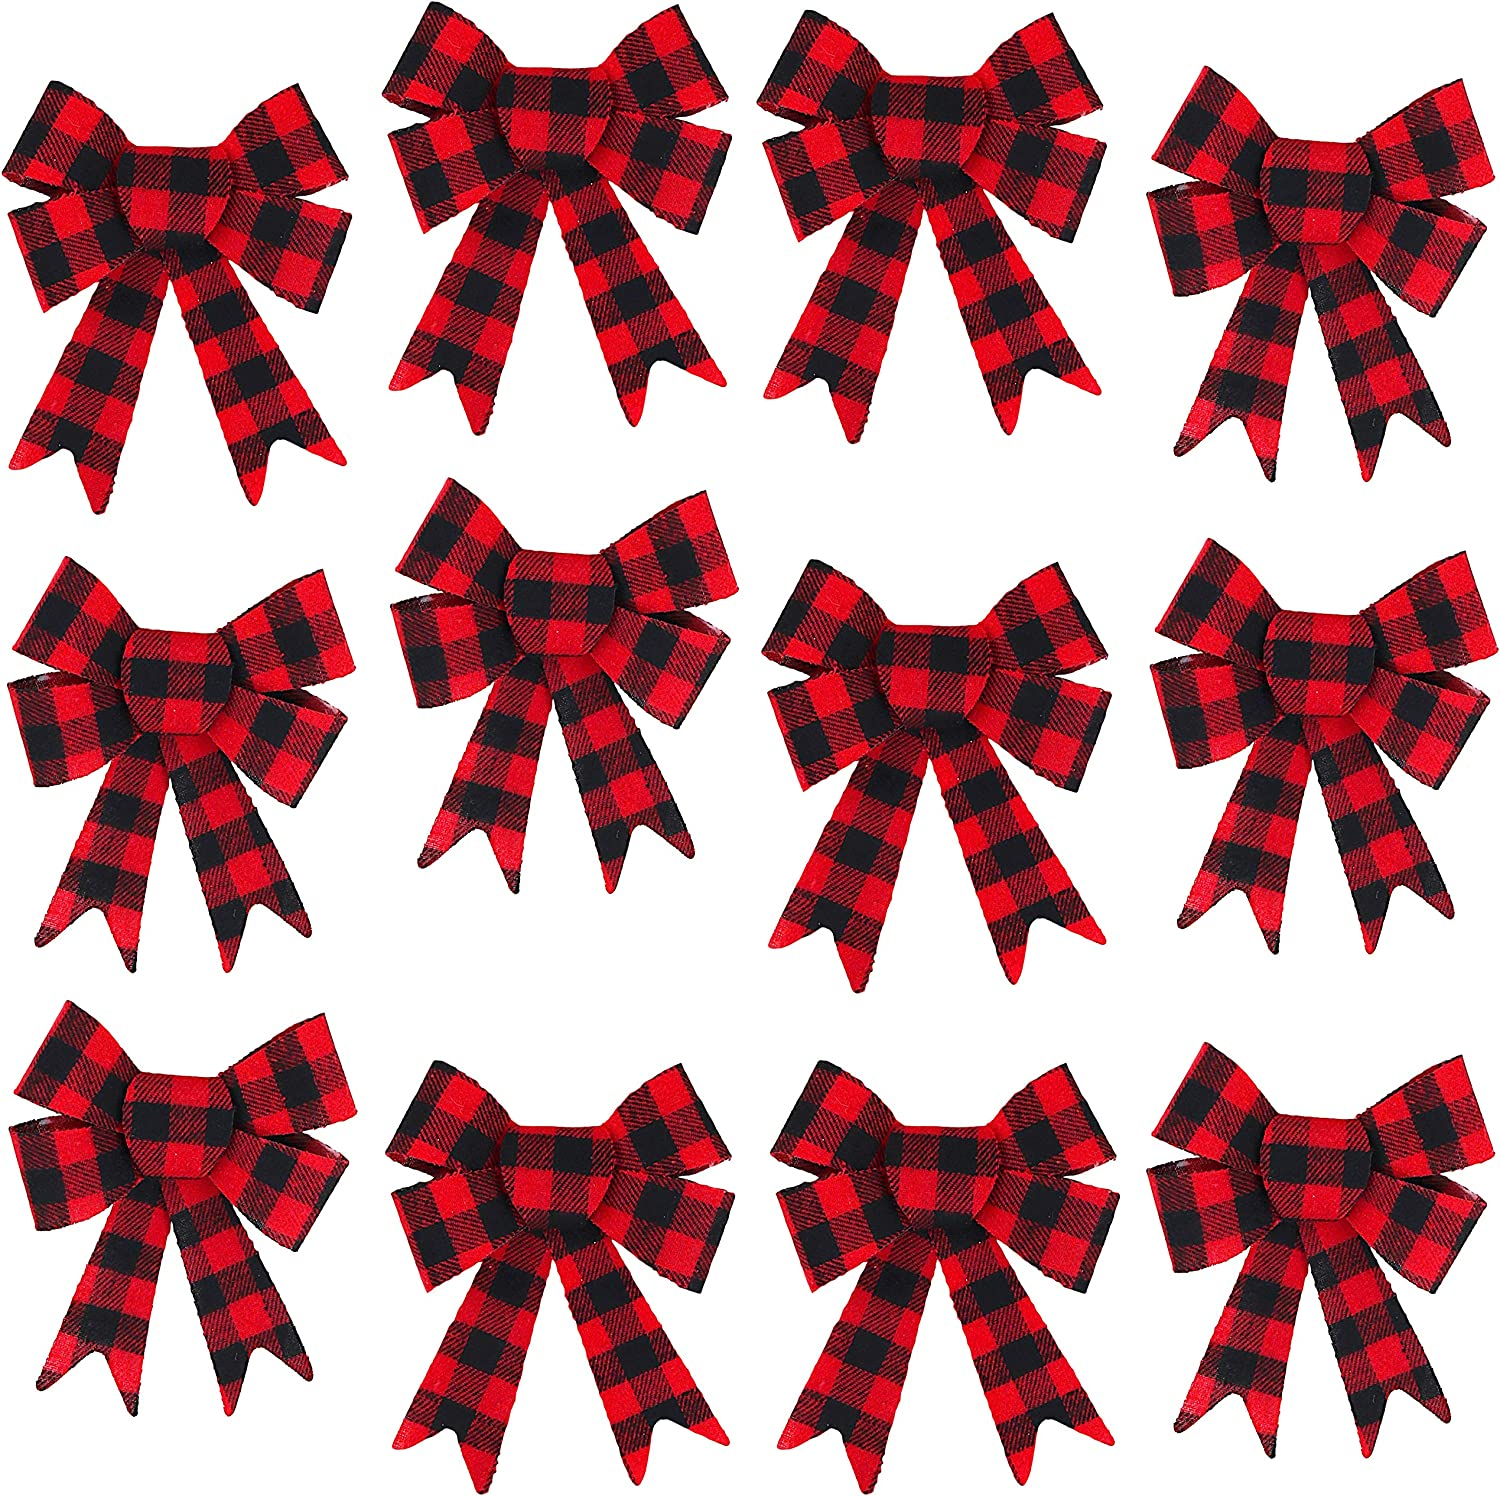 Iconikal 5-Loop Red Buffalo Plaid Flannel Bows 5 x 7-Inch, 12-Pack